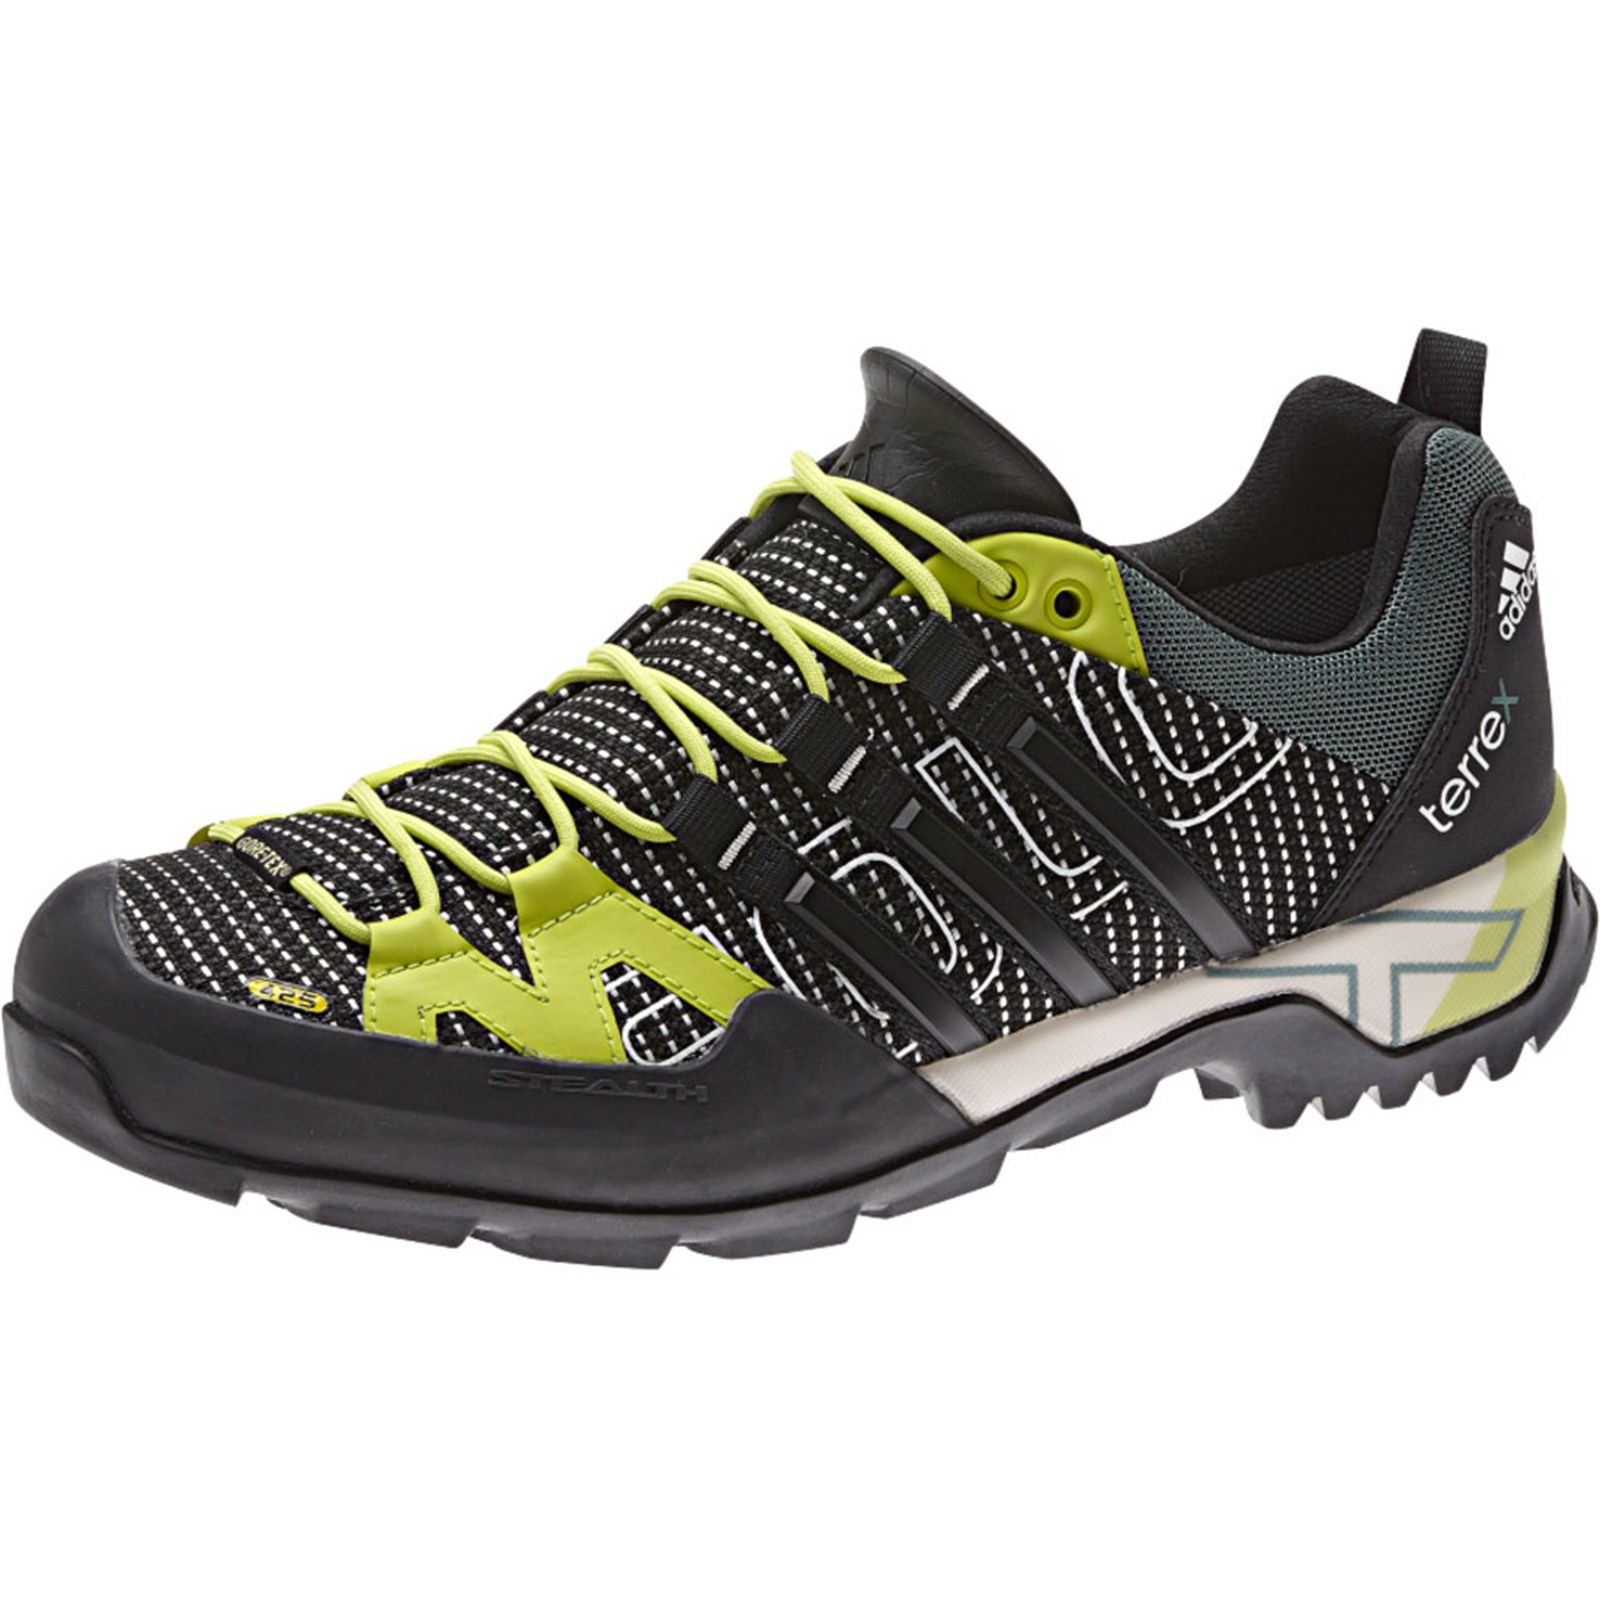 Adidas Outdoor Terrex Scope Gtx Approach Shoe Review